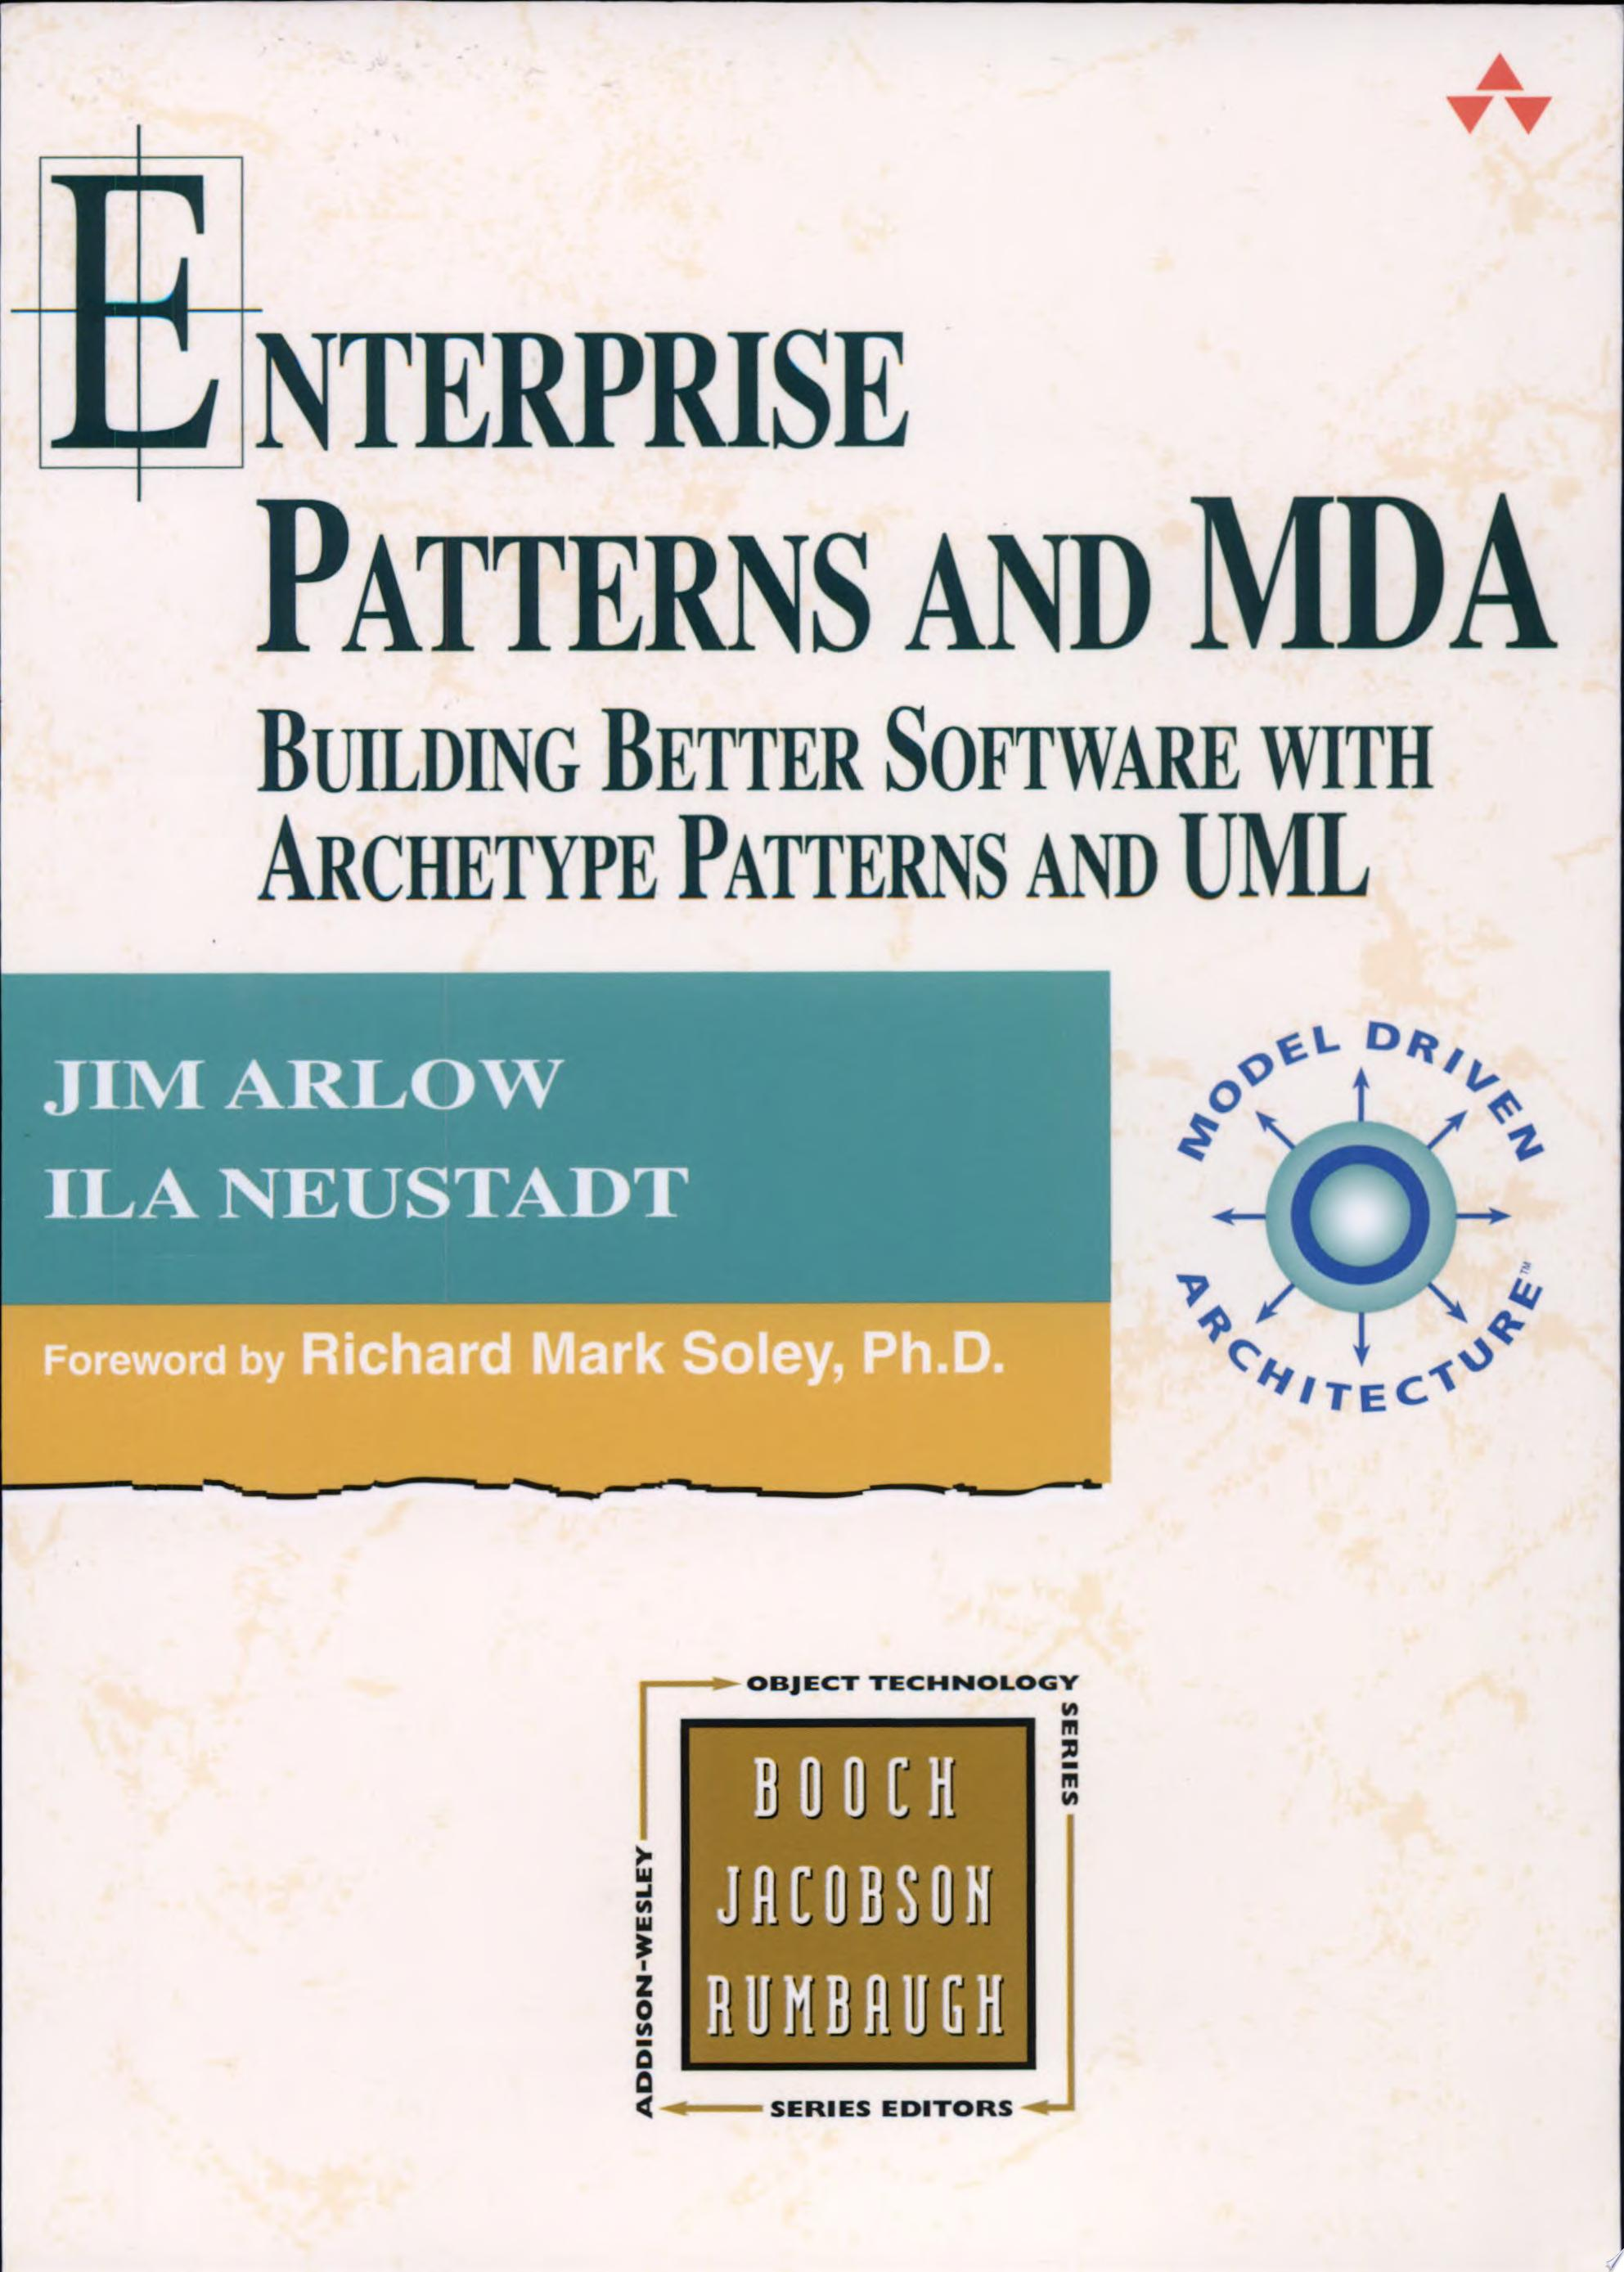 Enterprise Patterns and MDA